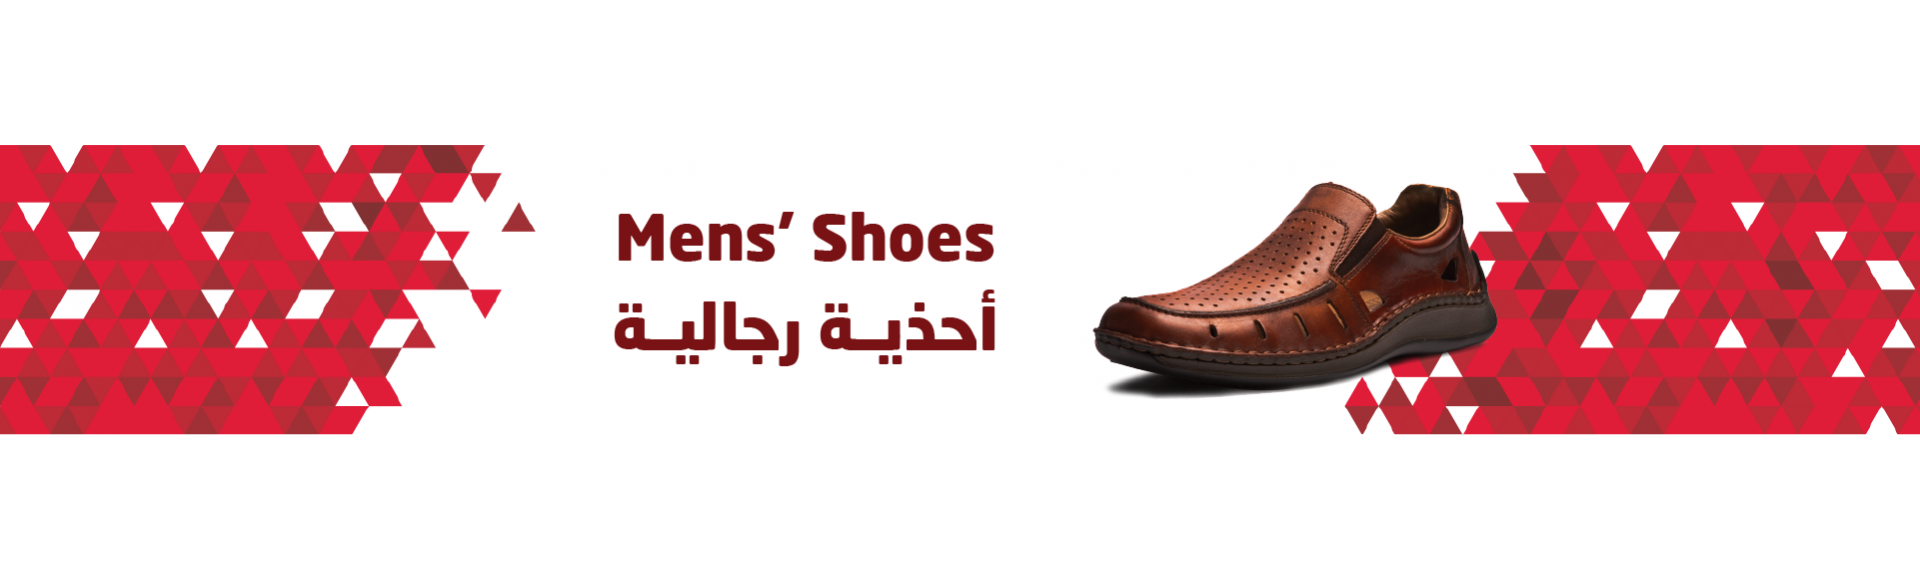 Mens' Shoes